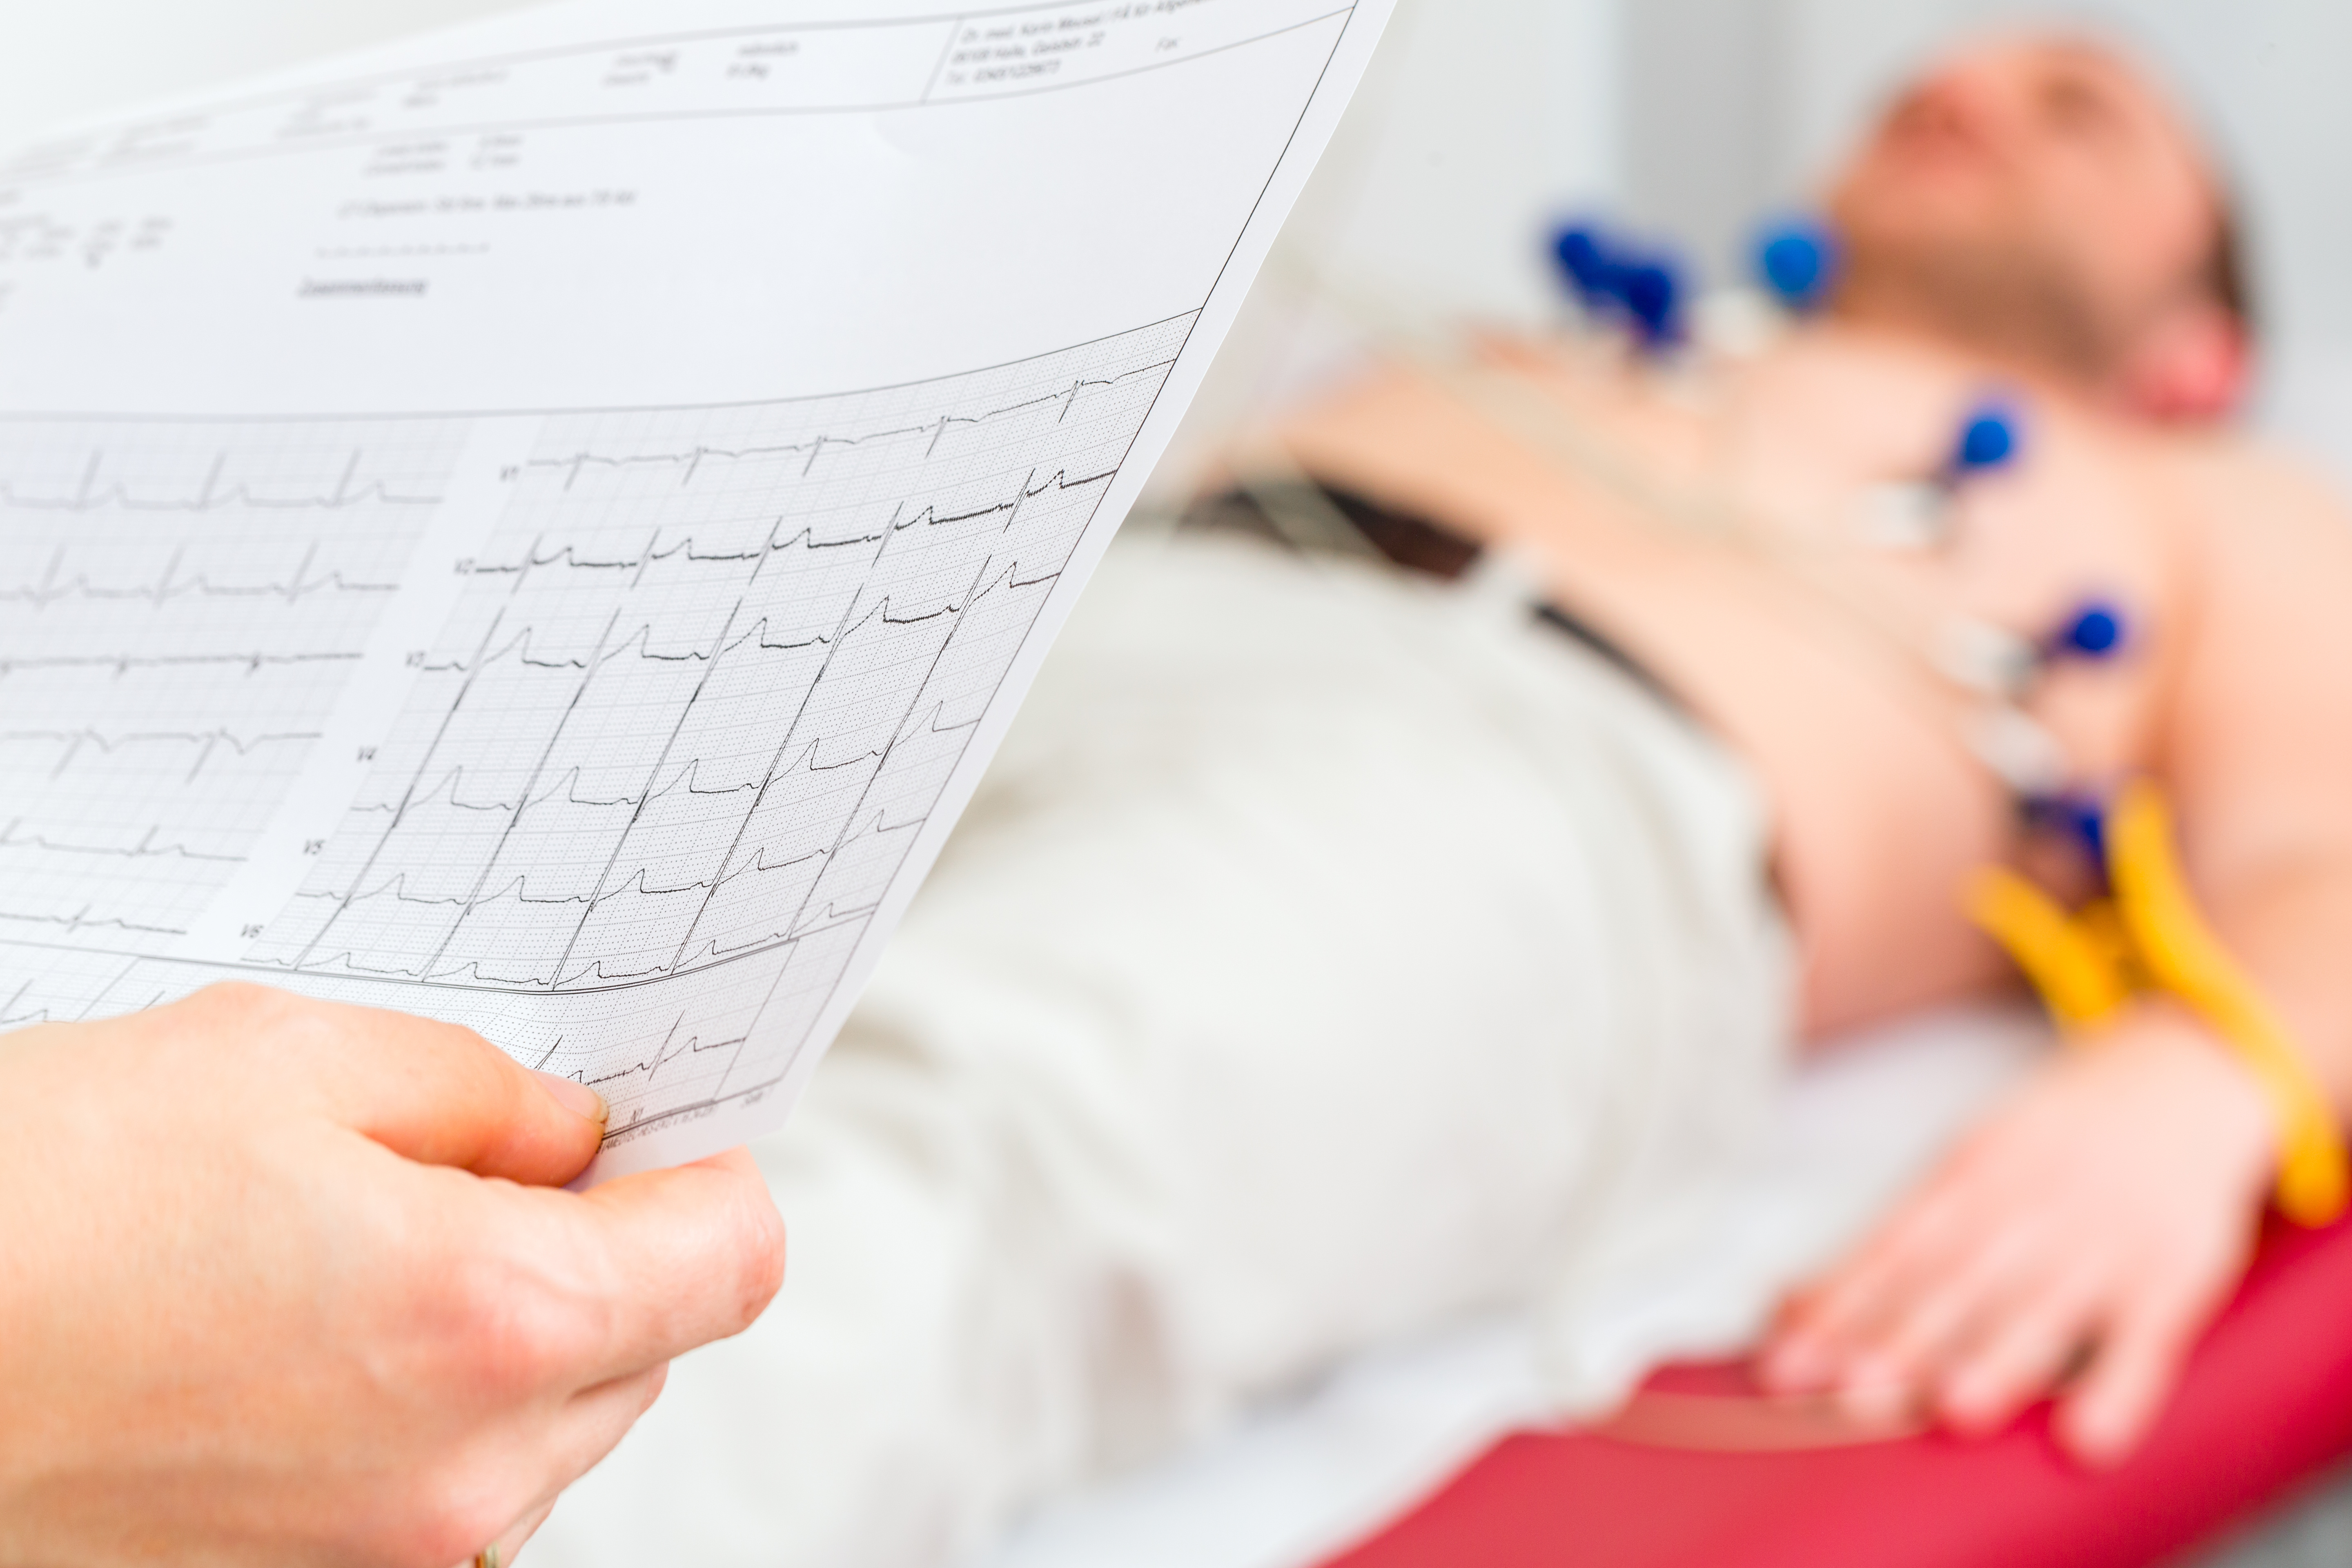 Female doctor analyzing ECG electrocardiogram patient hospital